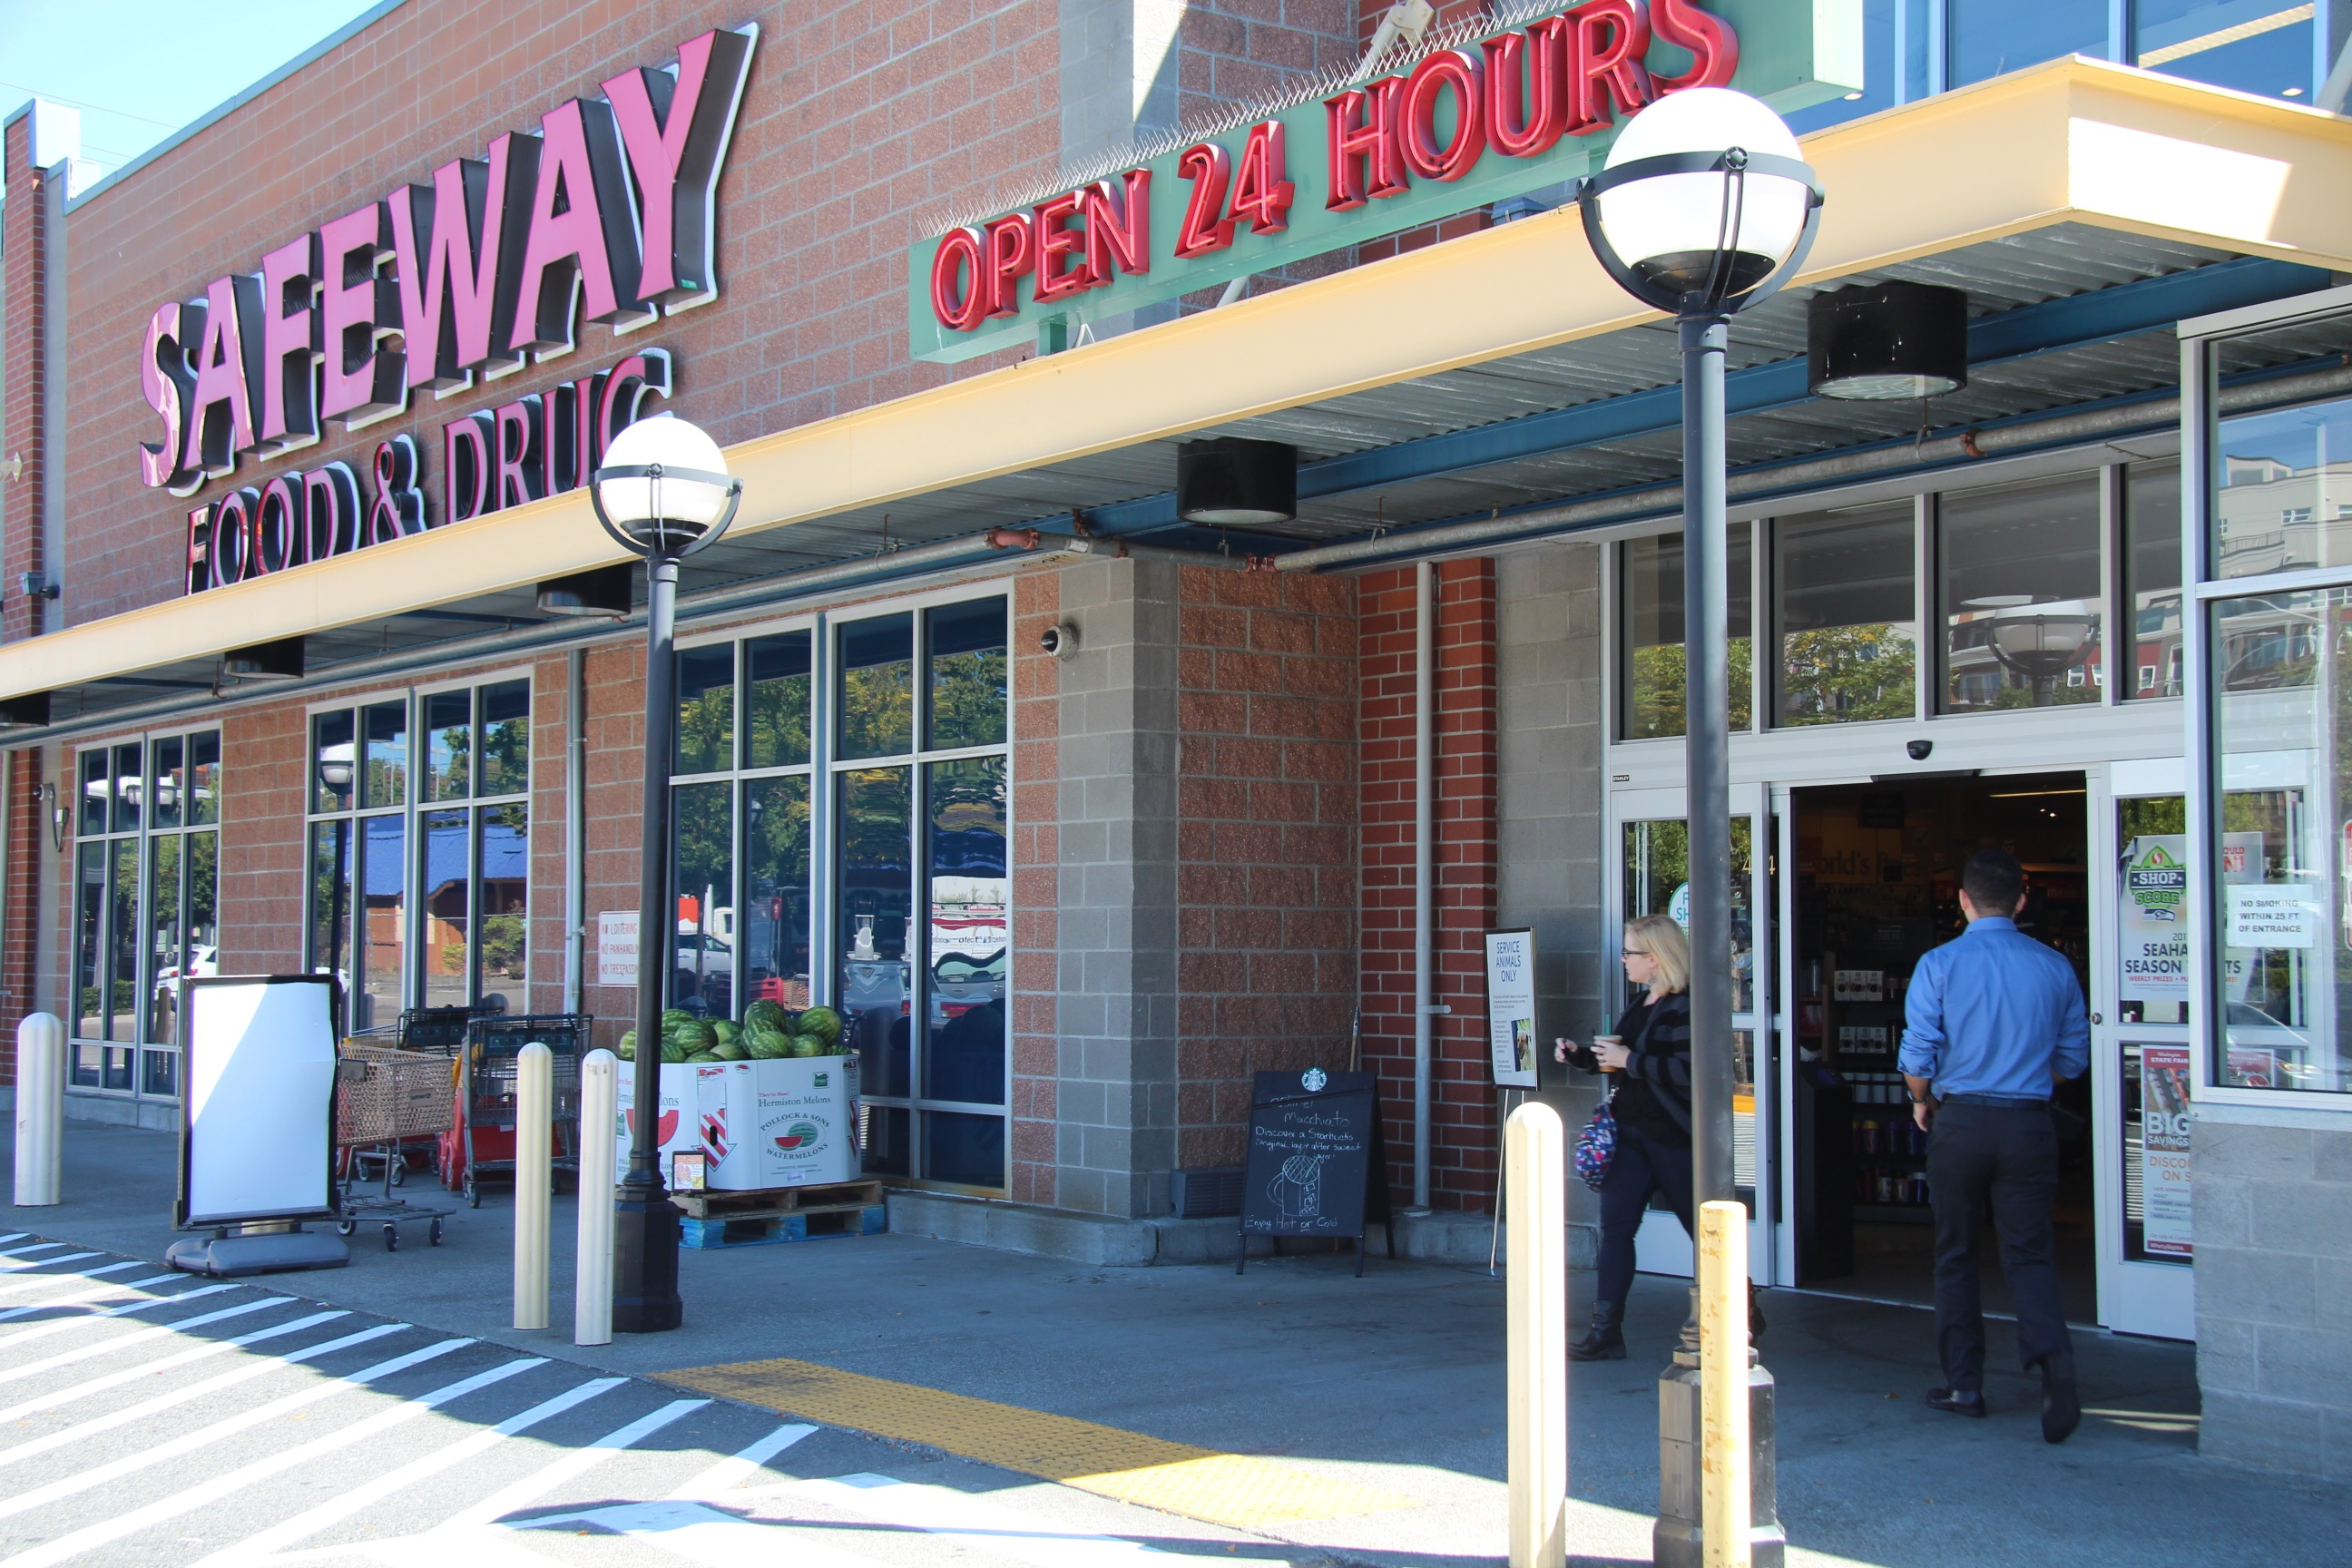 Woman works at Ballard Safeway for 12 years, fired for